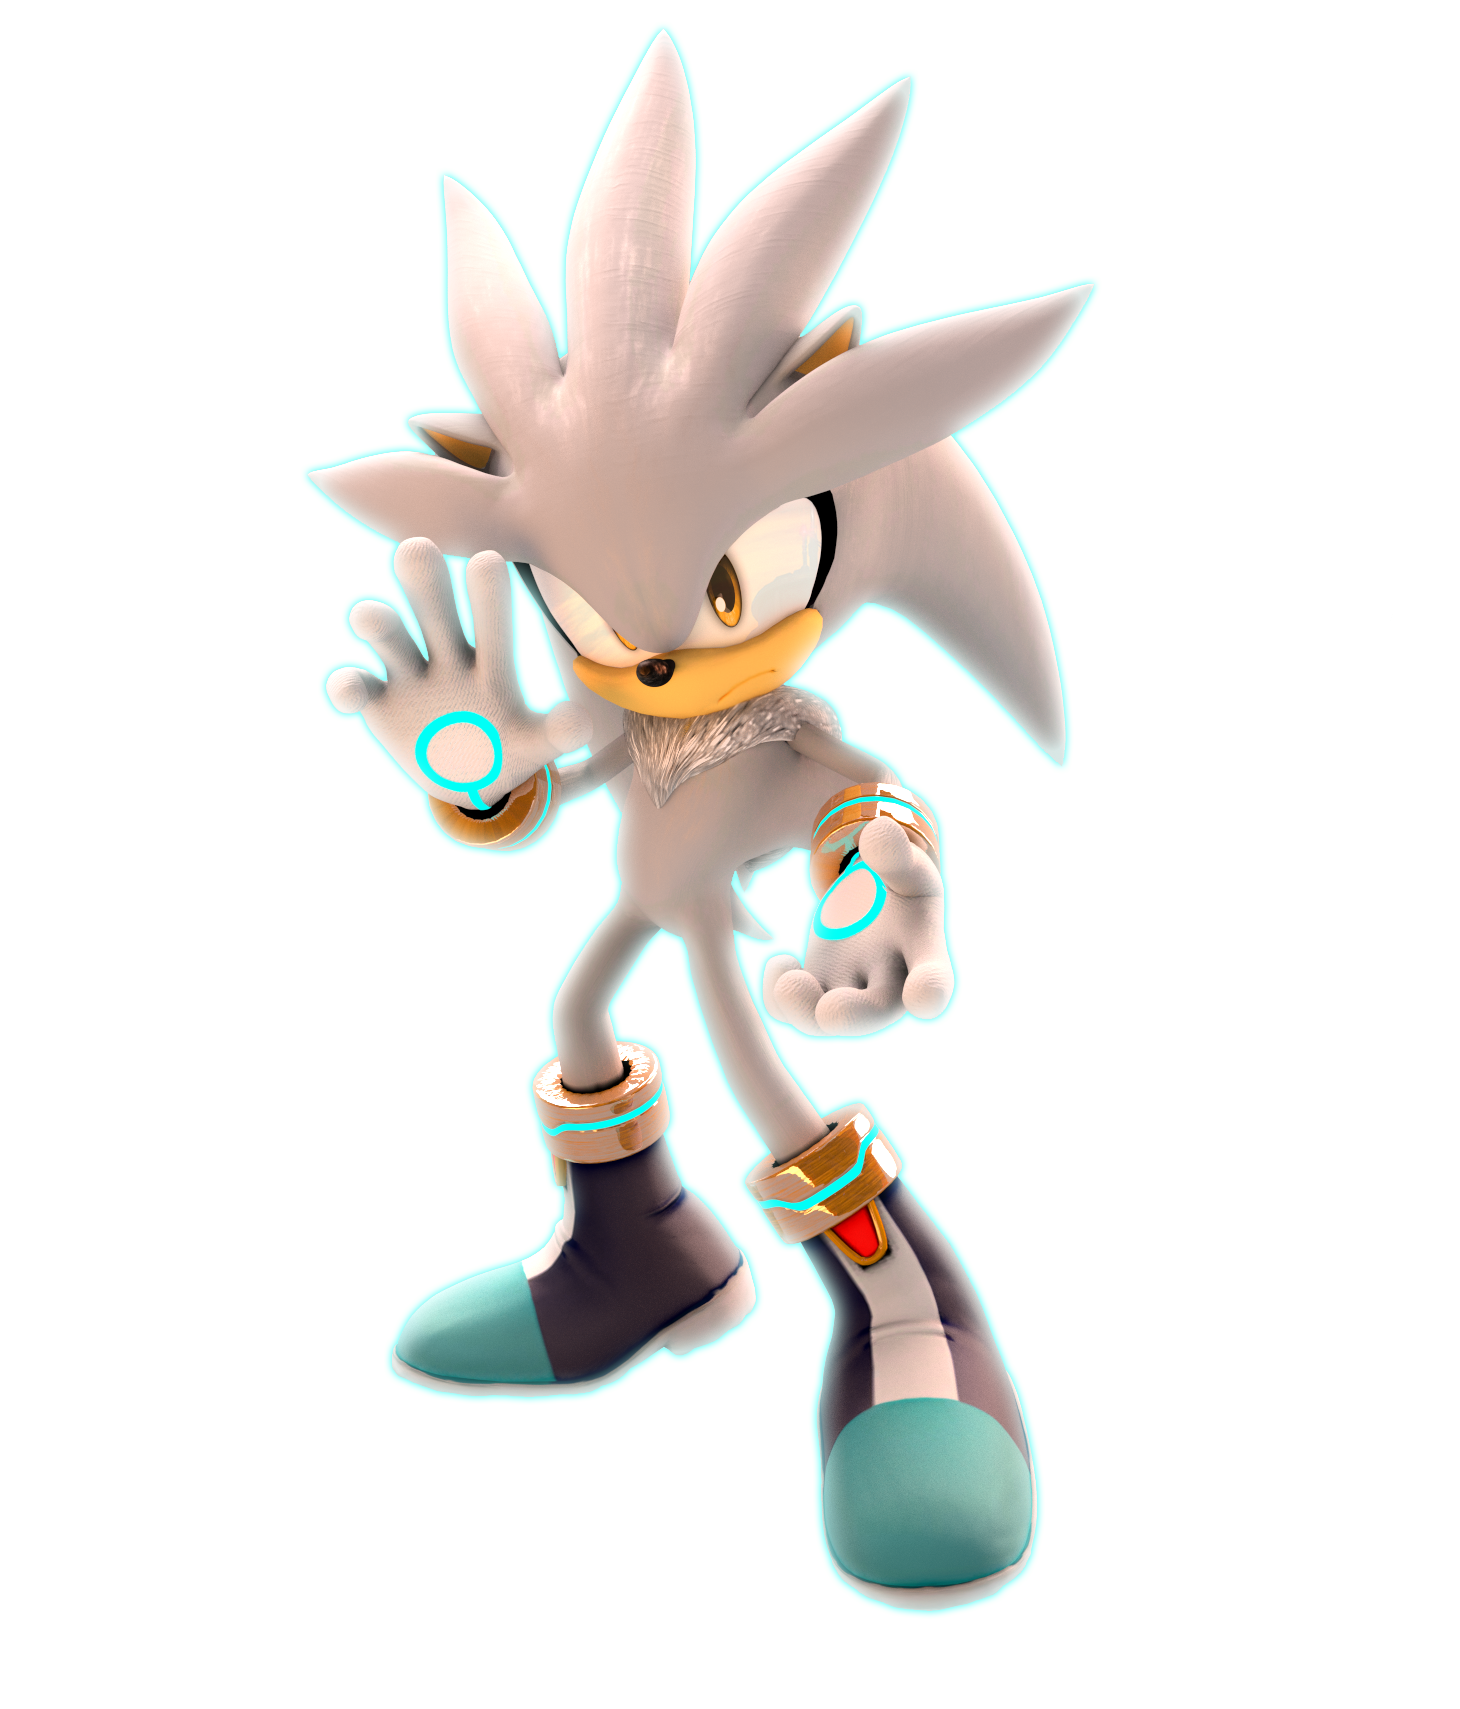 Silver The Hedgehog (U... Super Sonic And Super Shadow And Super Silver Toys